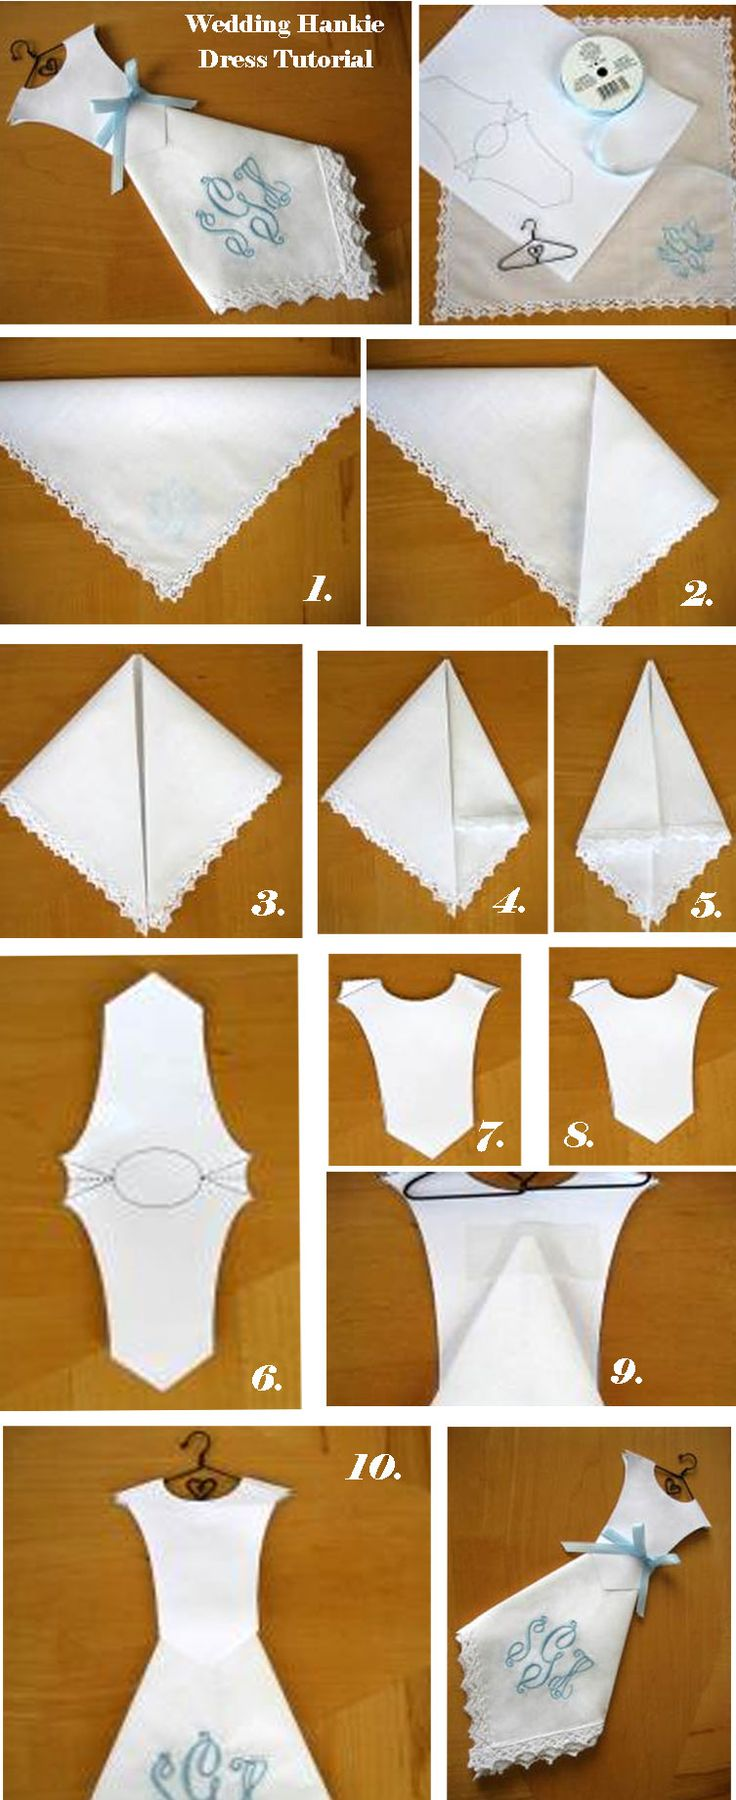 Wedding Hankie Dress Tutorial. Easy to make. Cute wedding or bridal shower favor. Bodice template can be found by clicking here. bumblebeelinens.com